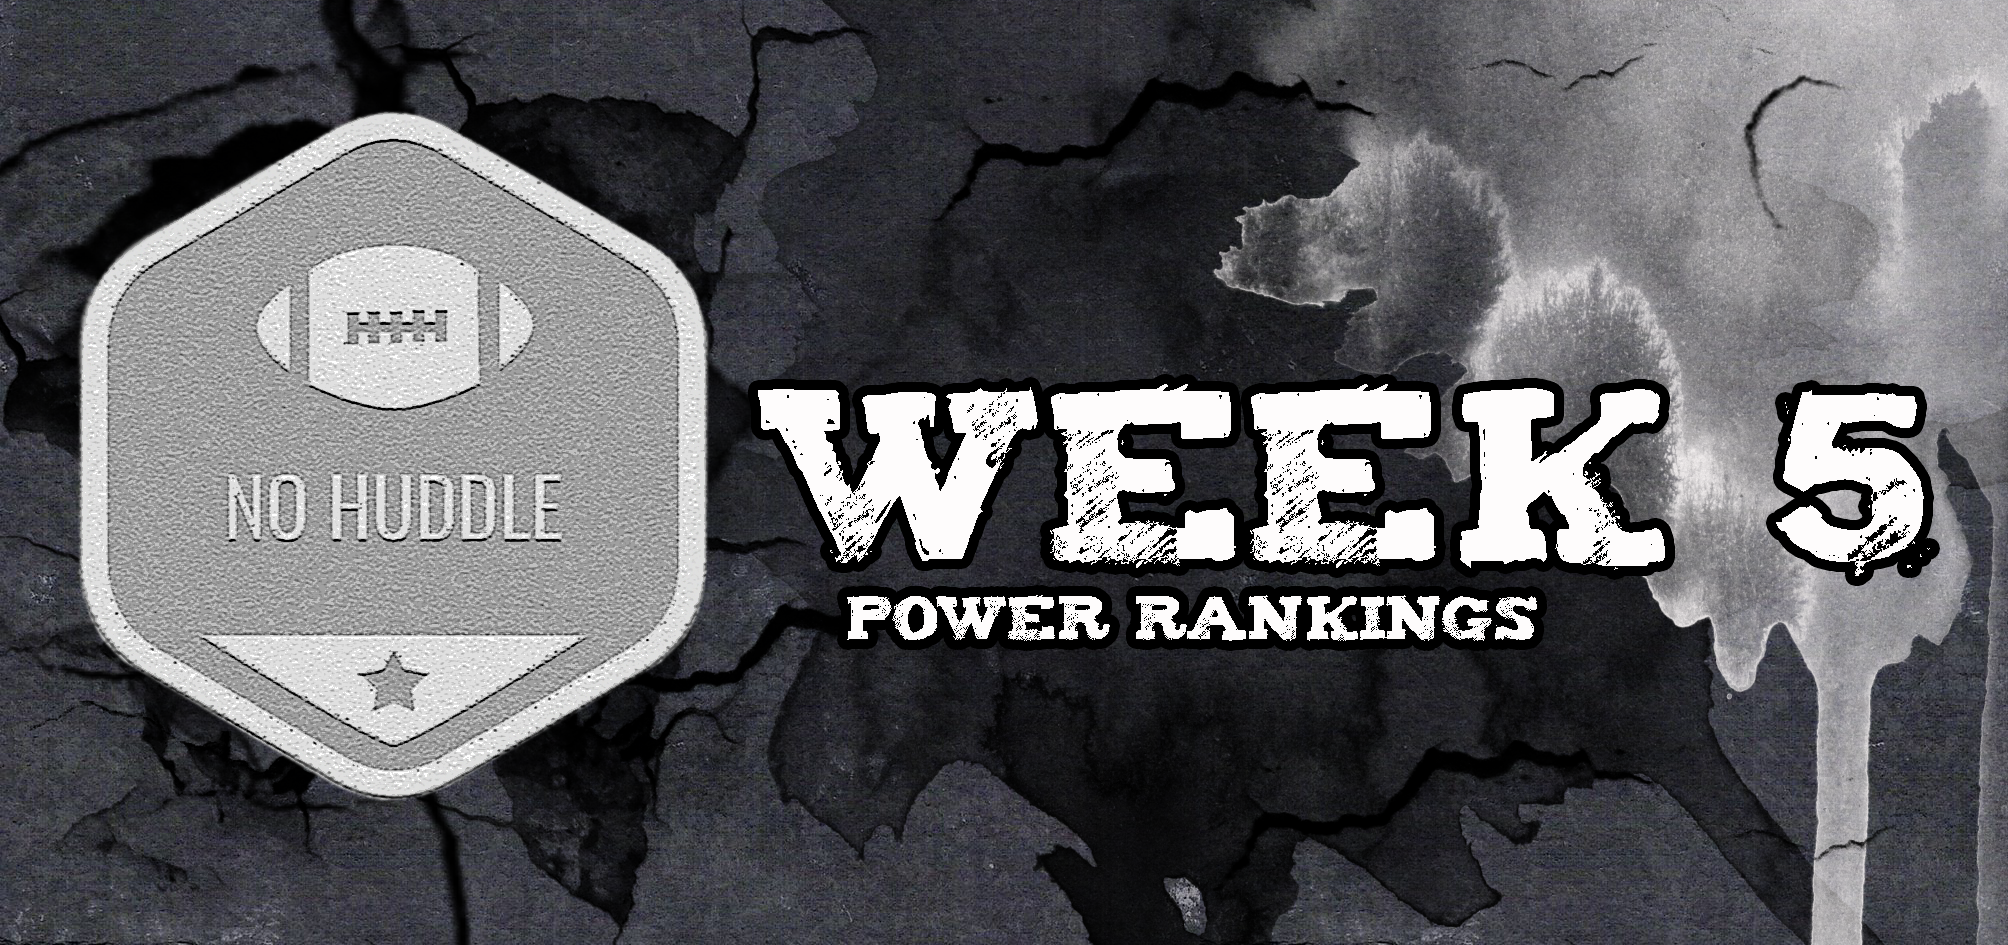 Power Rankings: Semana 5